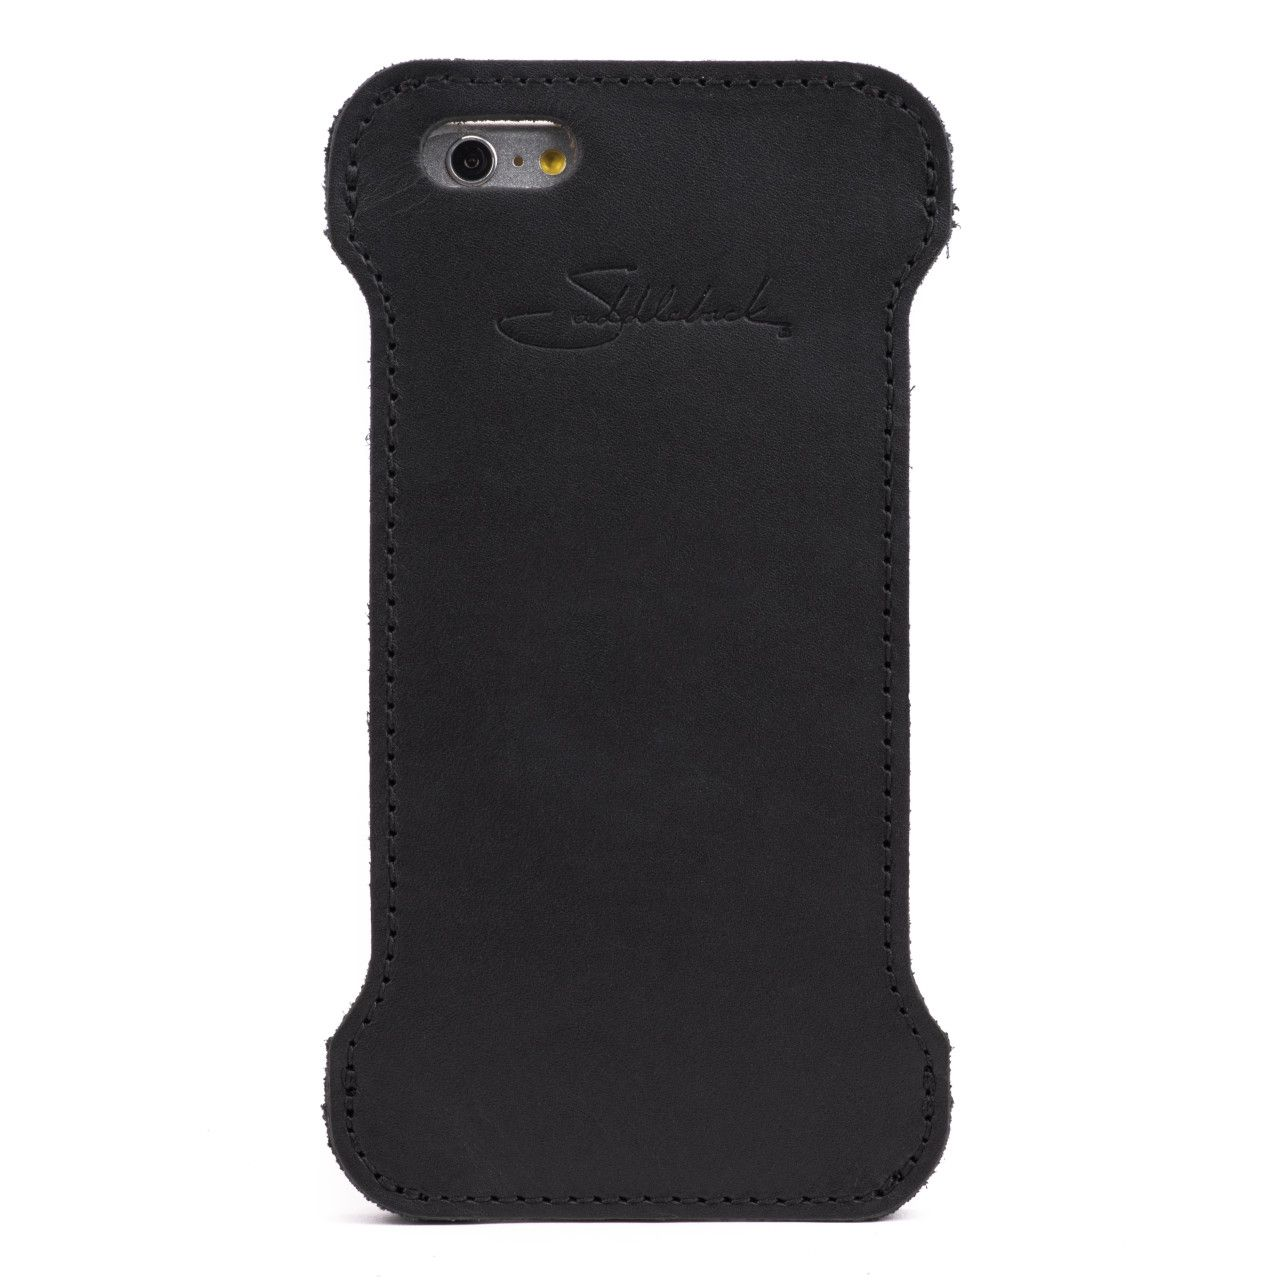 iphone 6 leather case large in black leather